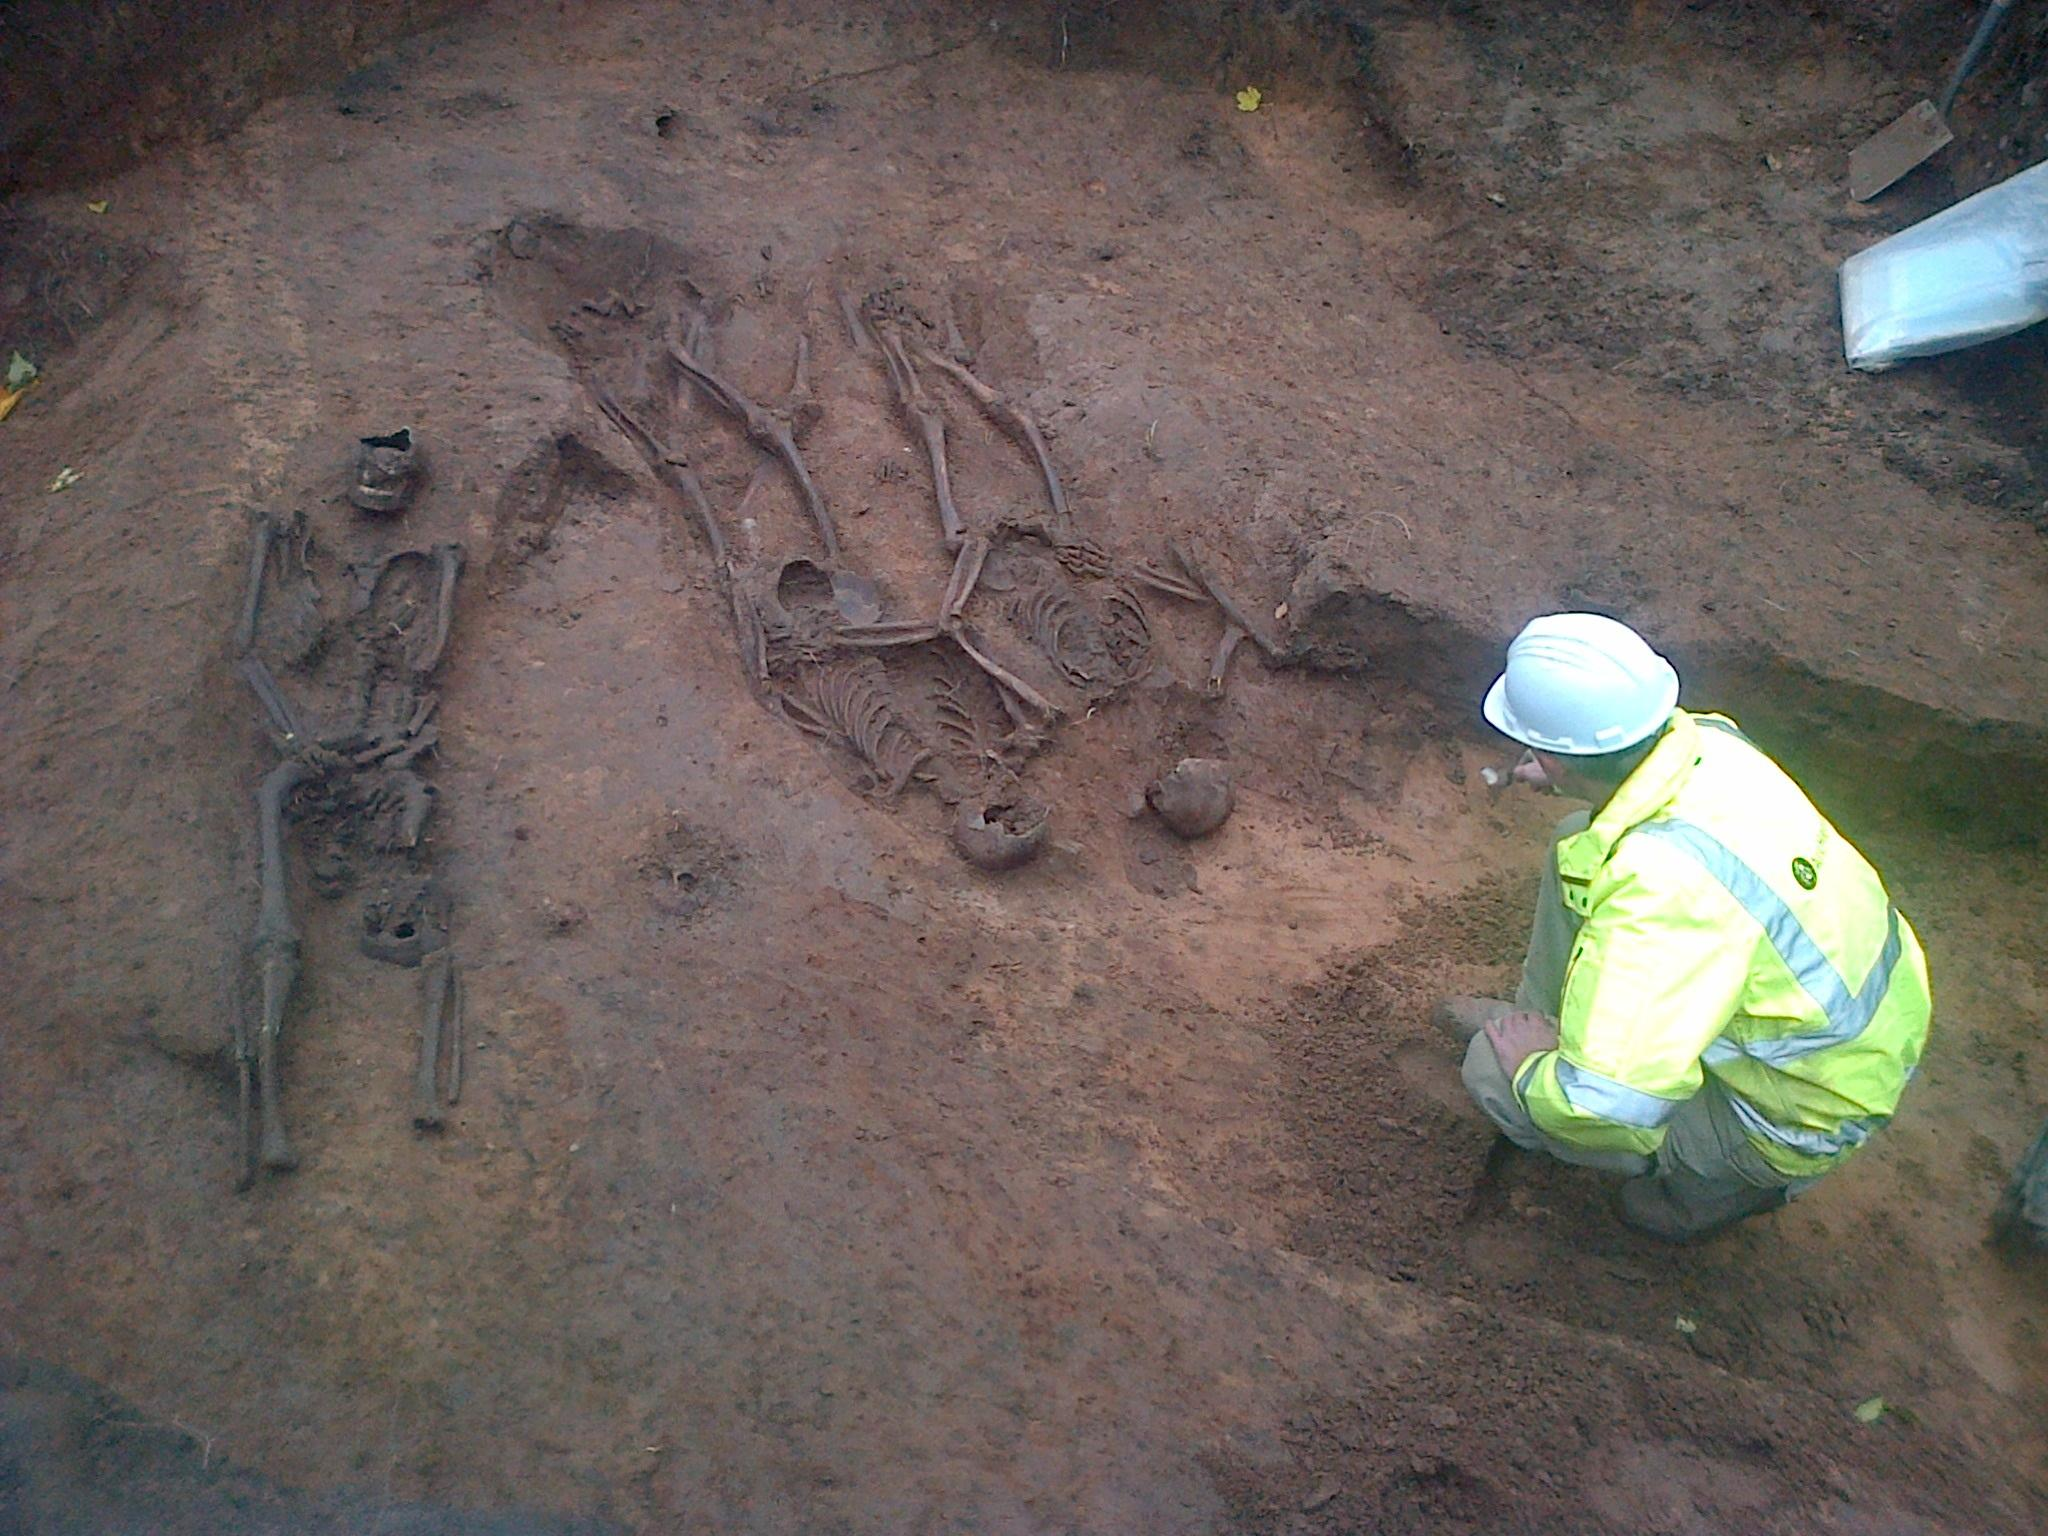 War of the Roses skeletons discovery - Lancastrians executed by Yorkists?